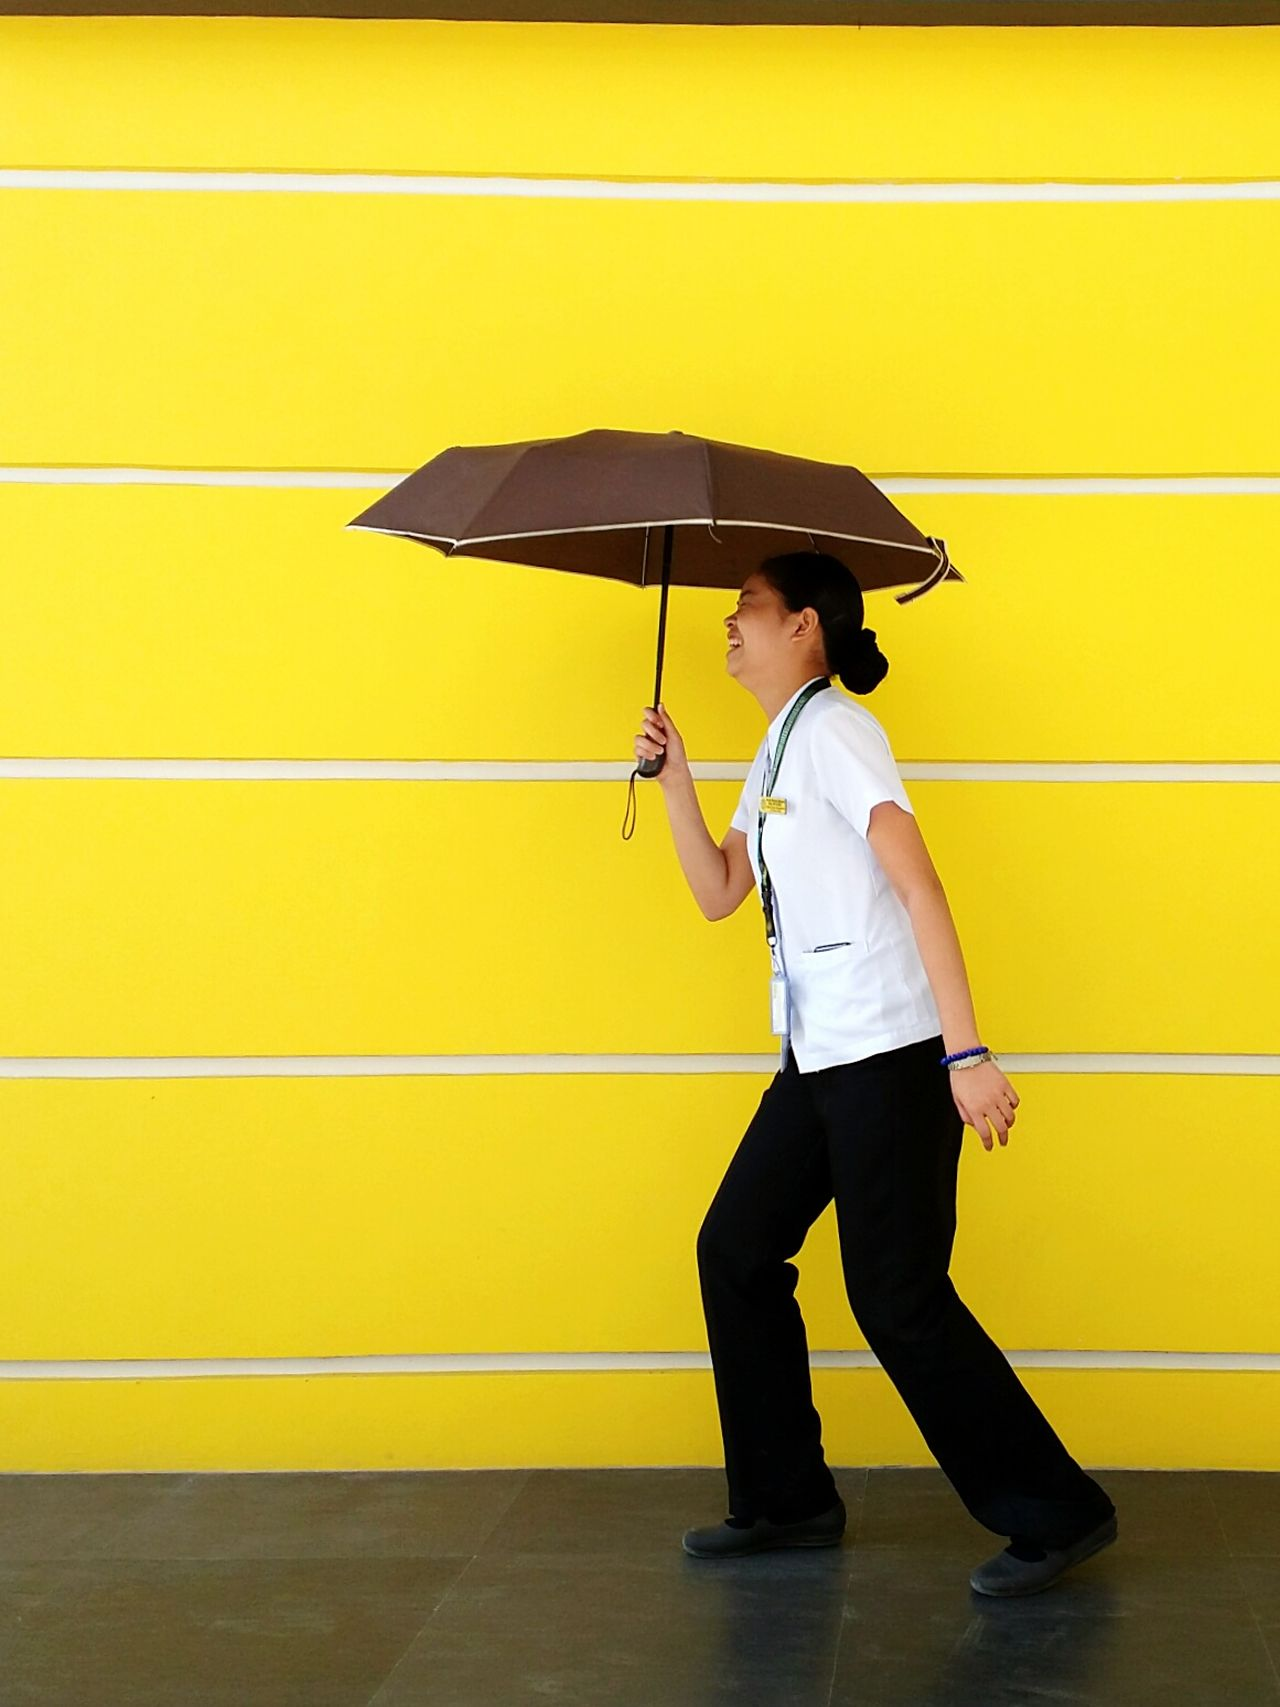 """Because i'm happy!"" -Pharell Philippines Architecture EyeEm EyeEm Best Shots Eyeem Philippines Light And Shadow Filipina Standing Lights And Shadows Person Student Nurse Yellow Umbrella Uniform Samsung Galaxy Camera"